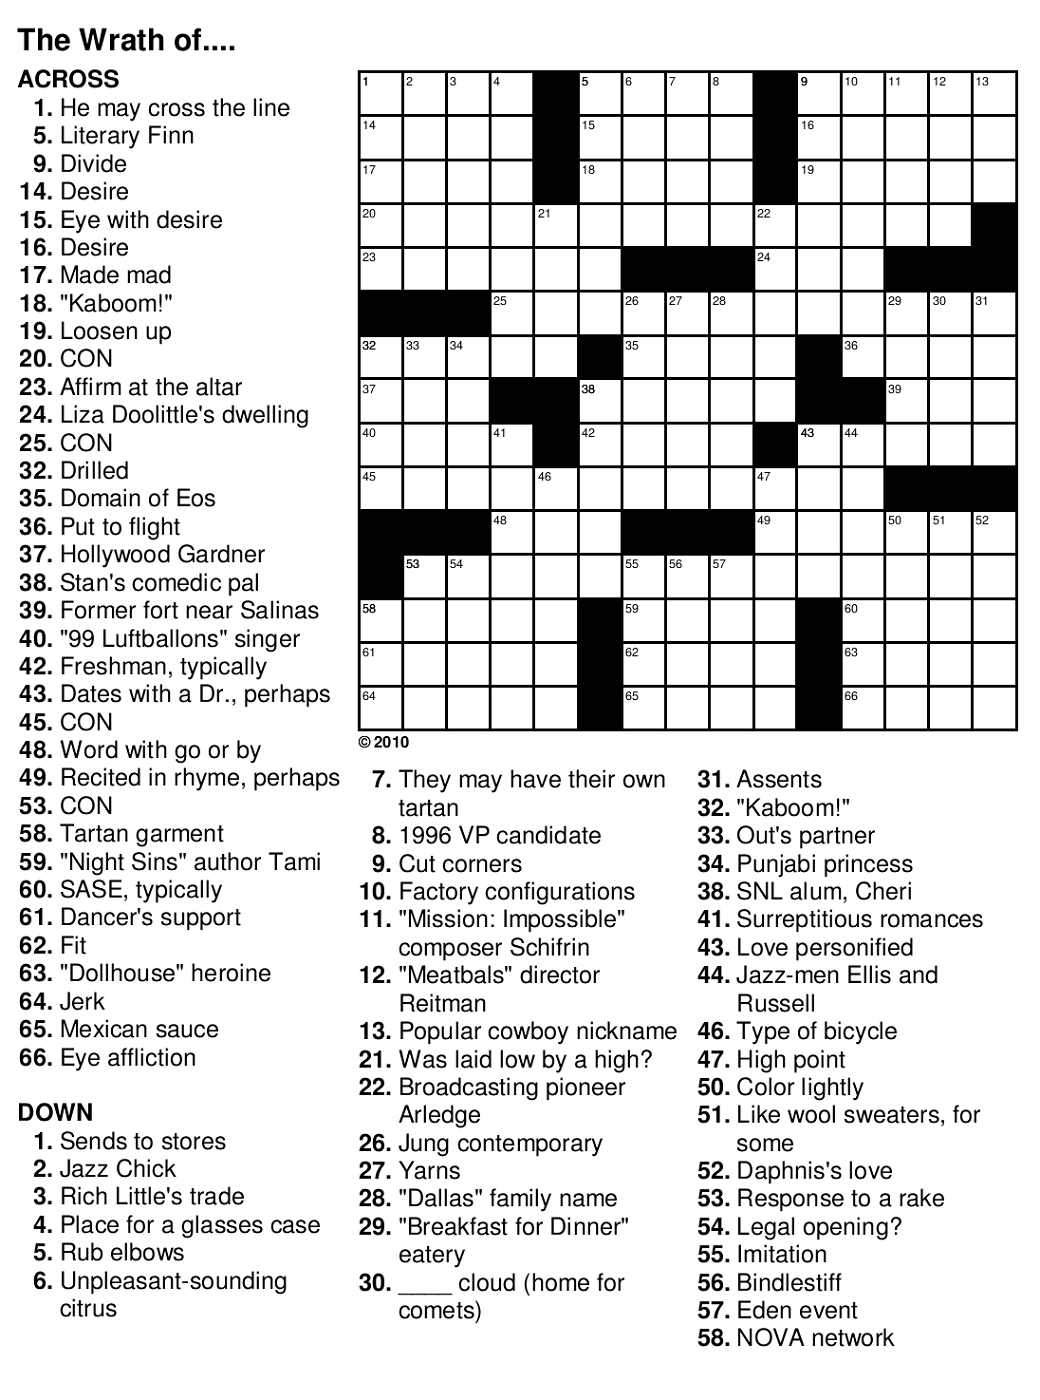 Easy Crossword Puzzles For Seniors | Activity Shelter - Printable Crossword Puzzles Seniors